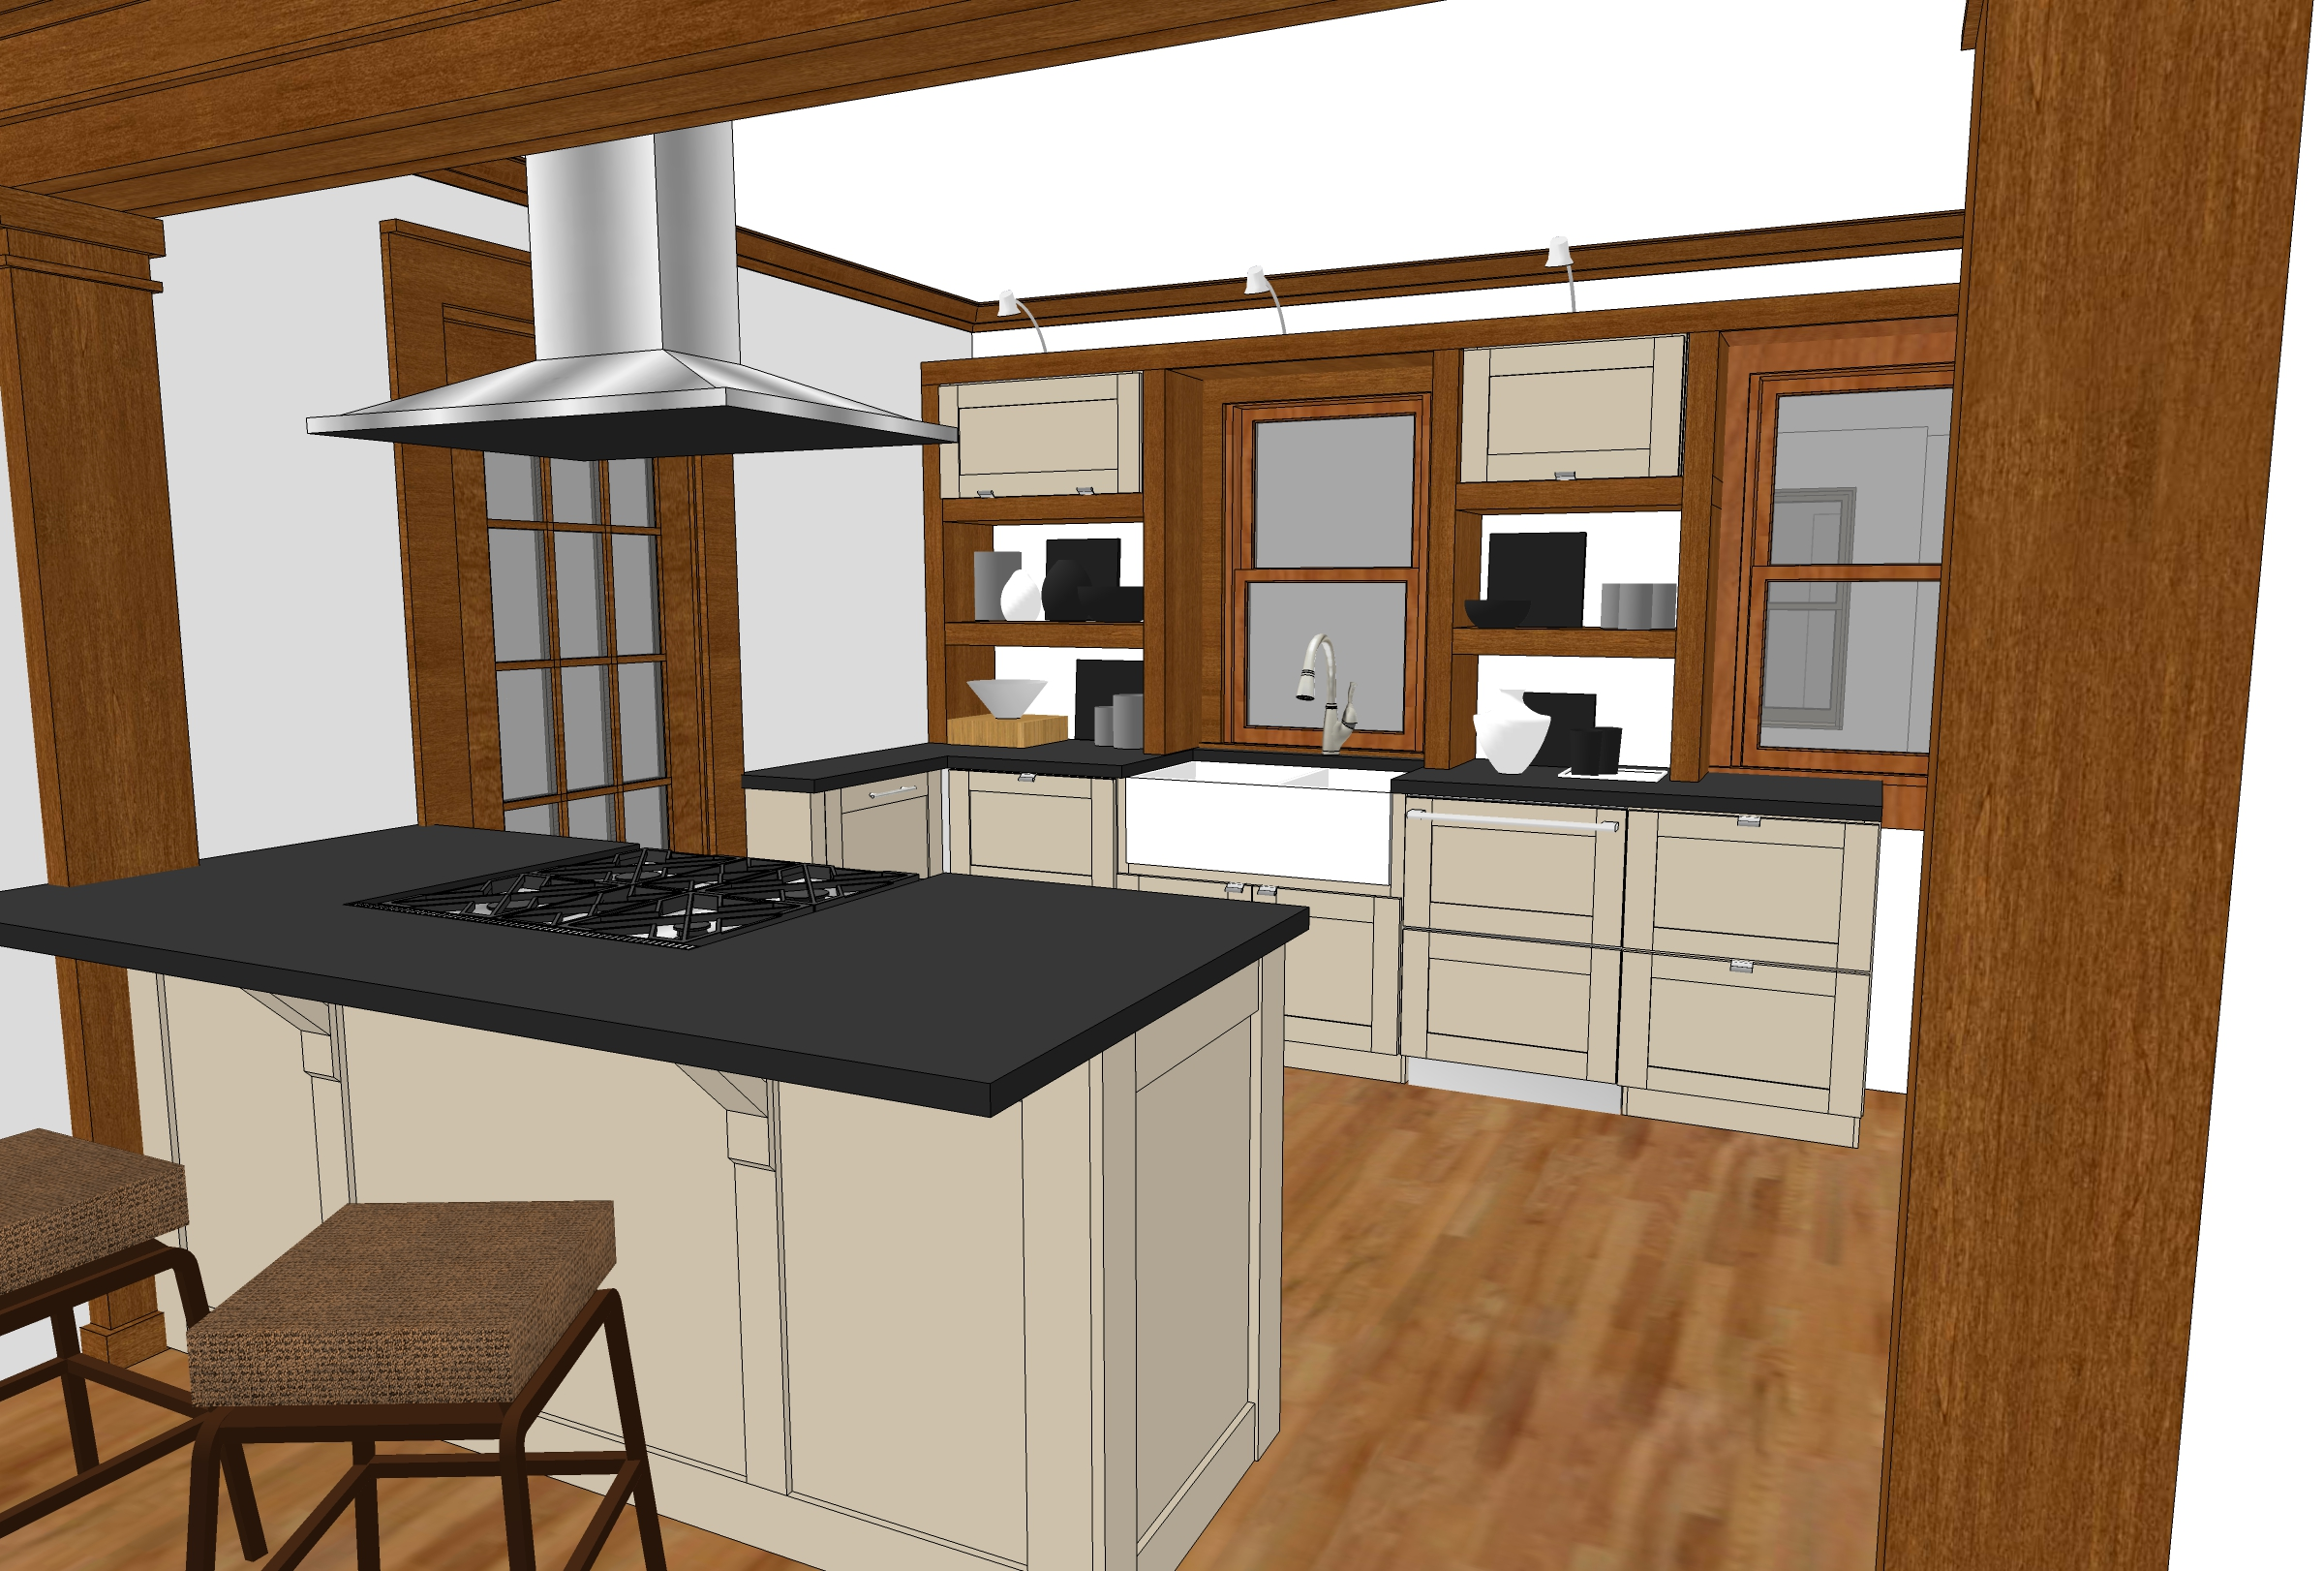 The first design with Painted cabinets and open shelving as part of the storage system.